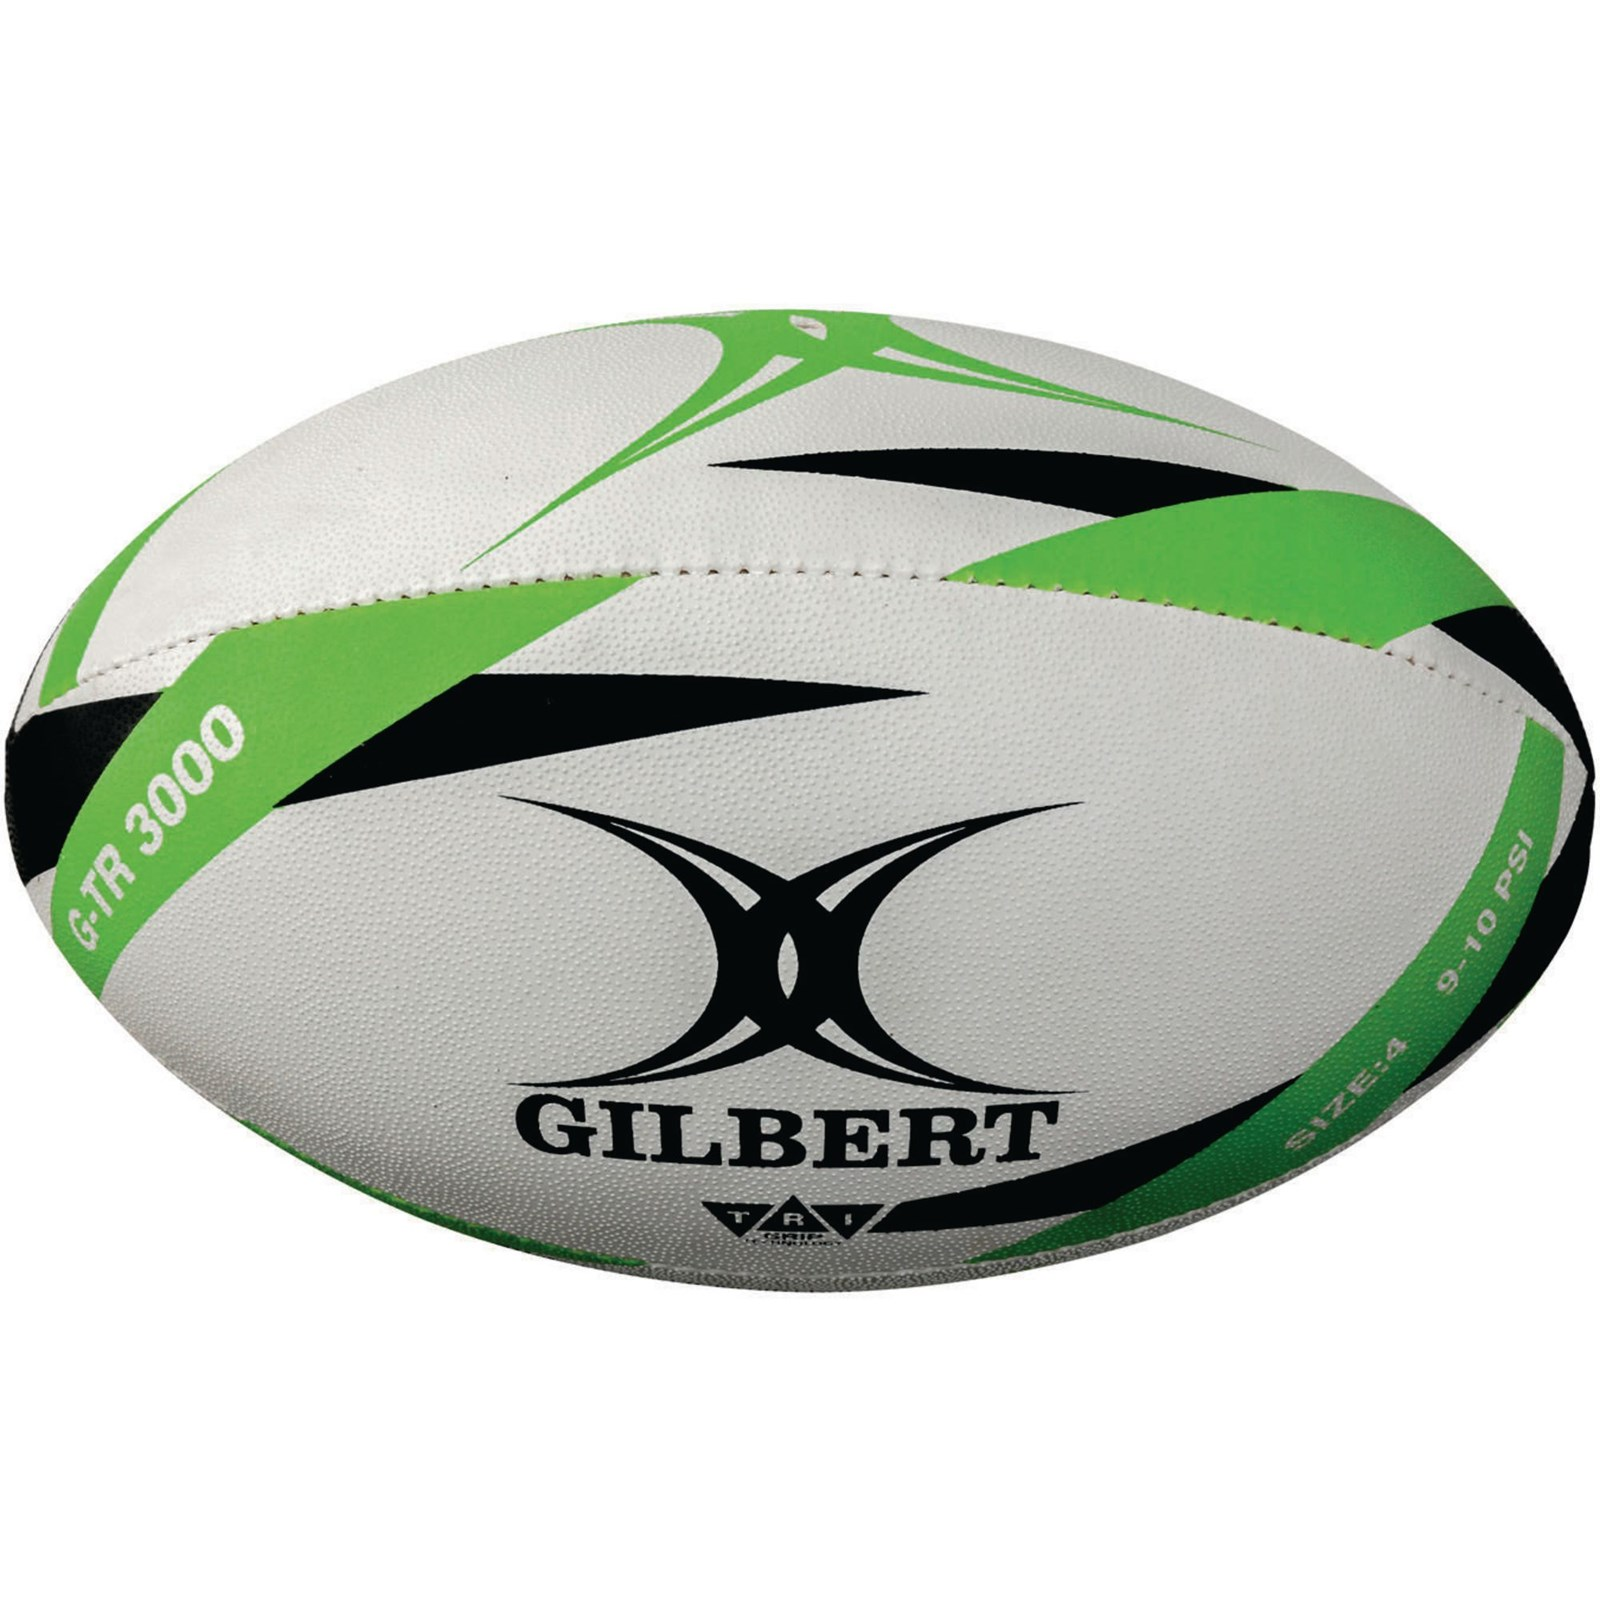 Gilbert G-TR3000 Trainer Rugby Ball - White/Green - Size 4